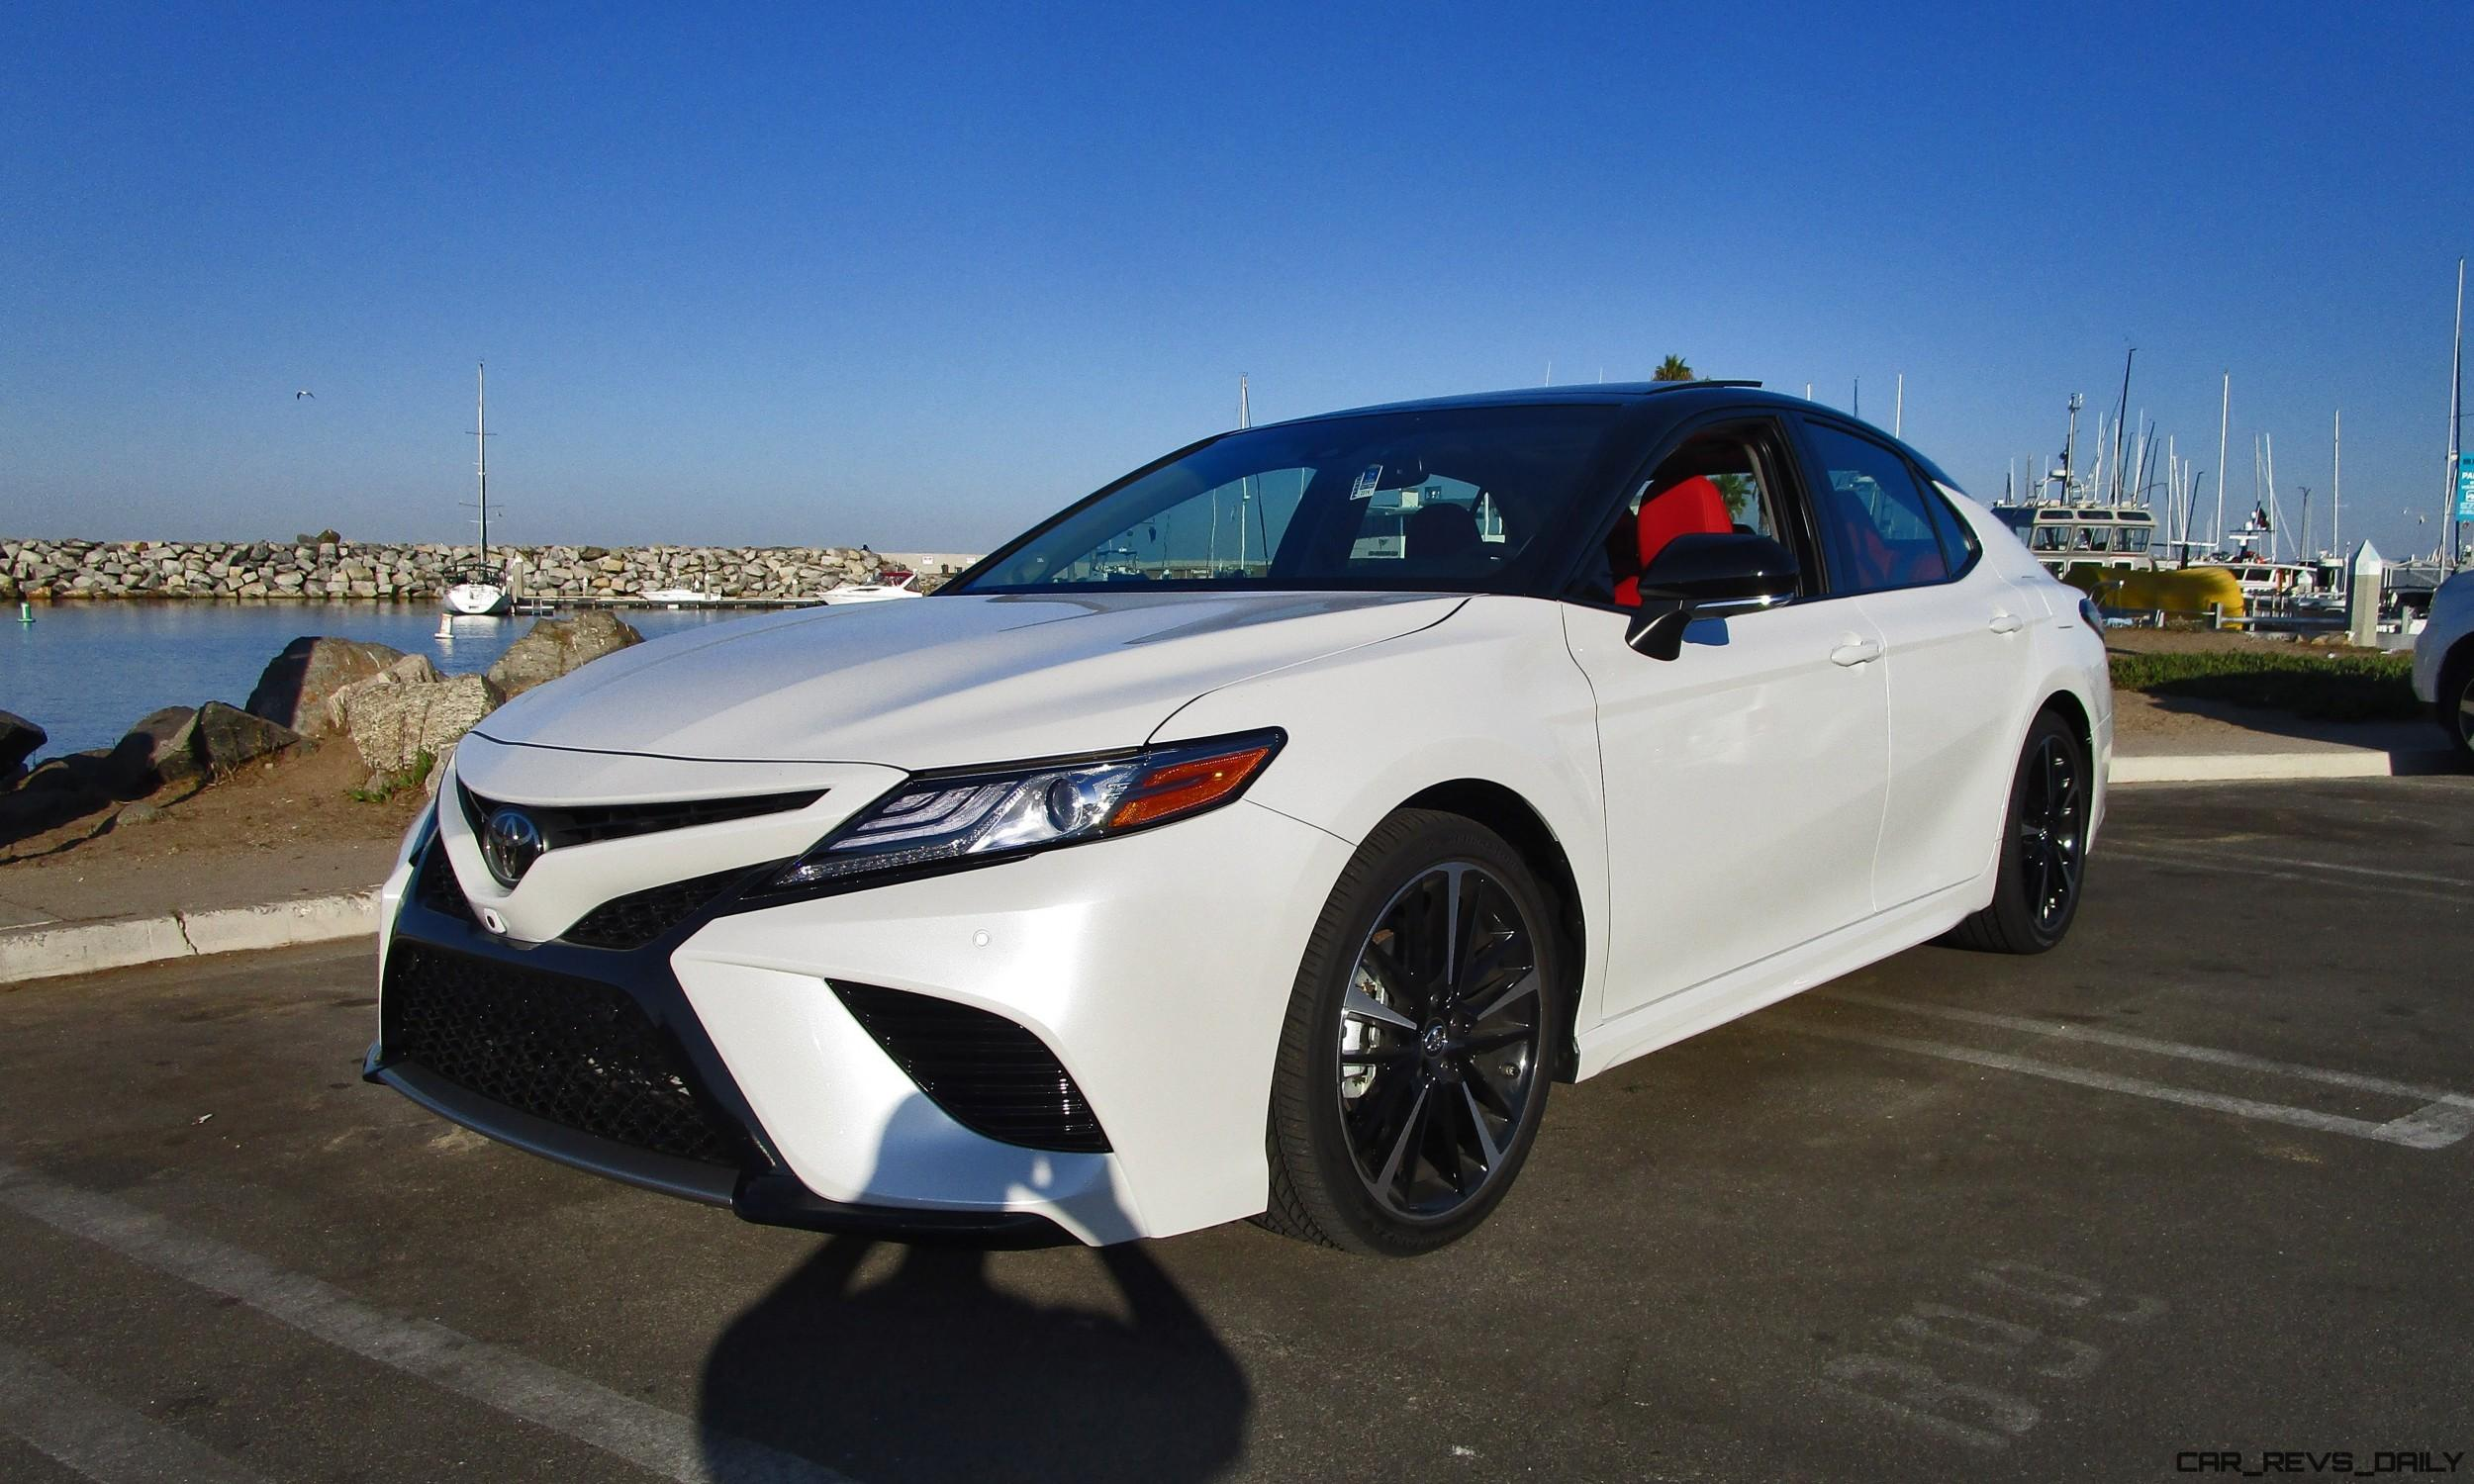 2018 toyota camry xse v6 road test review by ben lewis latest news for 2018 toyota camry xse interior